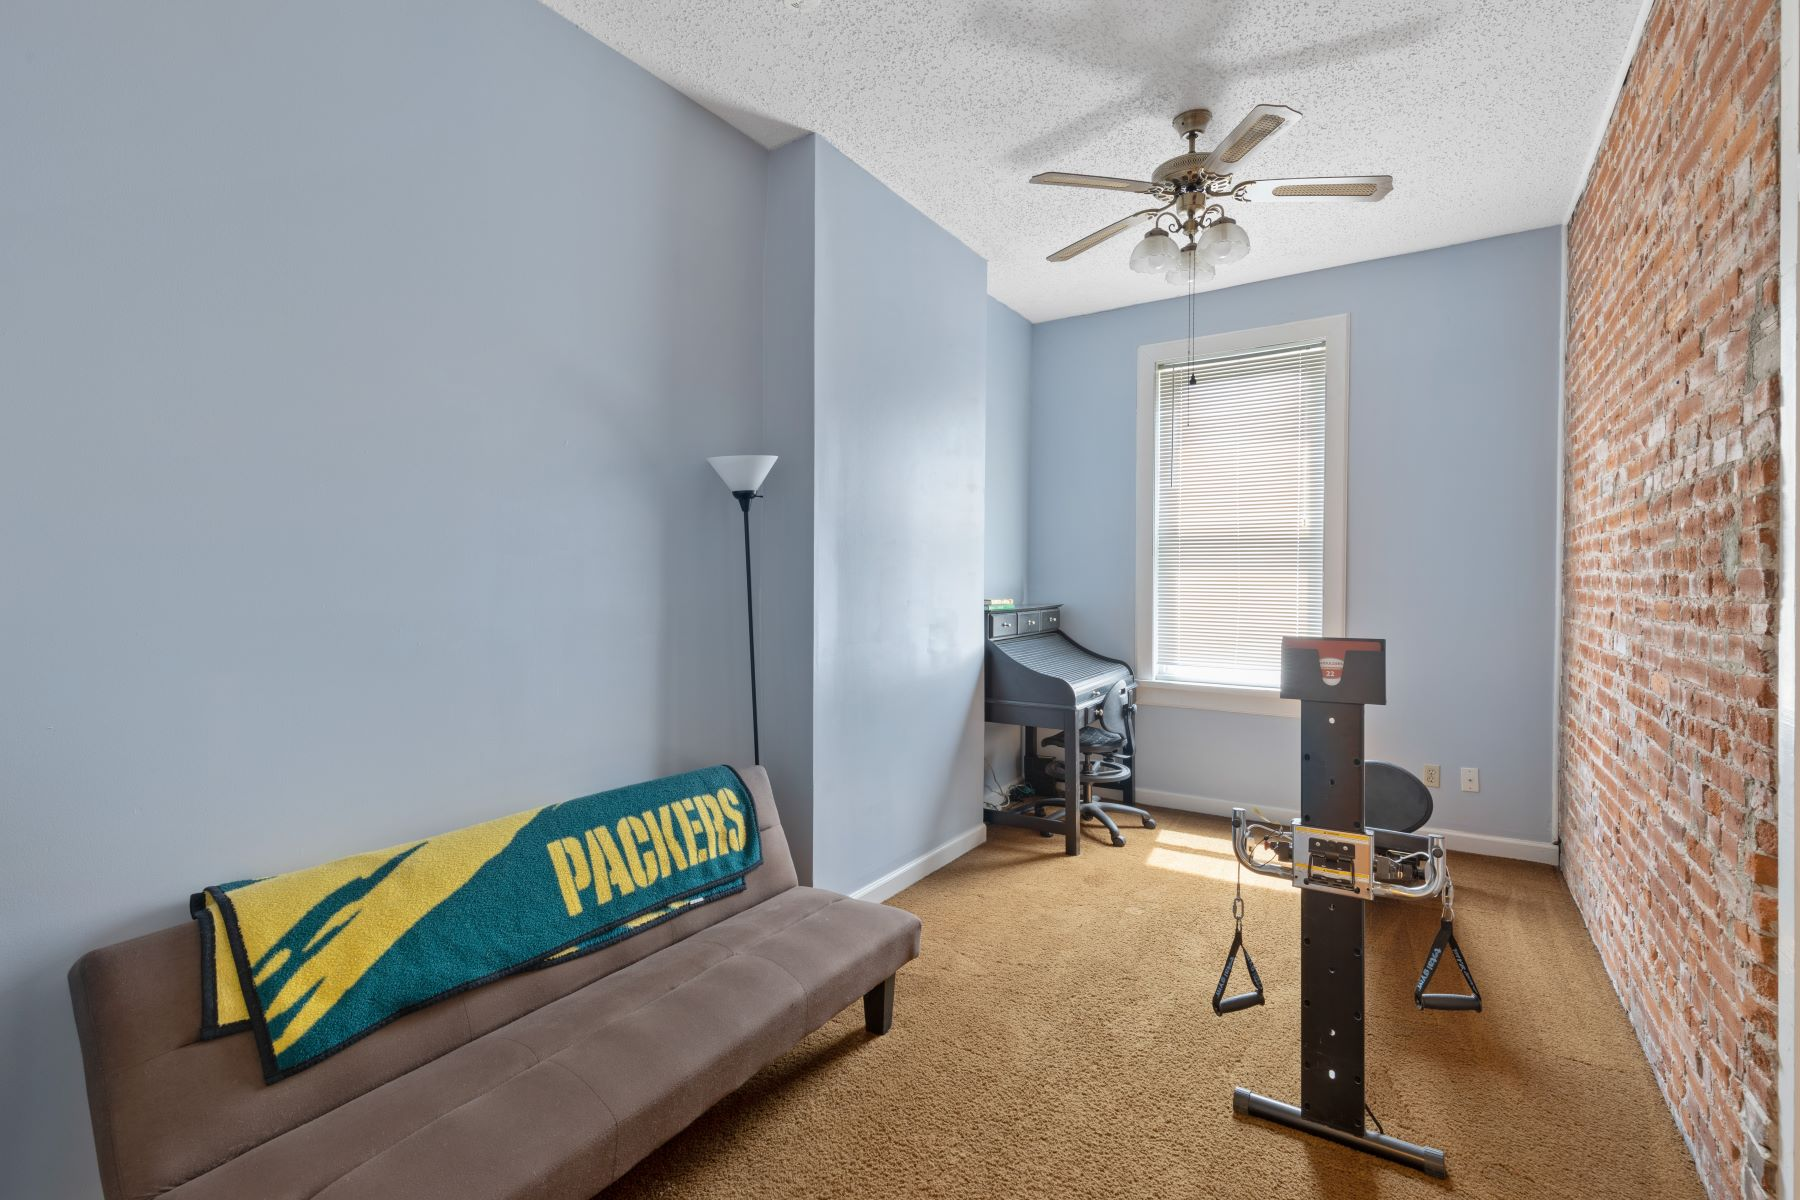 Additional photo for property listing at 1004 Allen Avenue St. Louis, Missouri 63104 United States